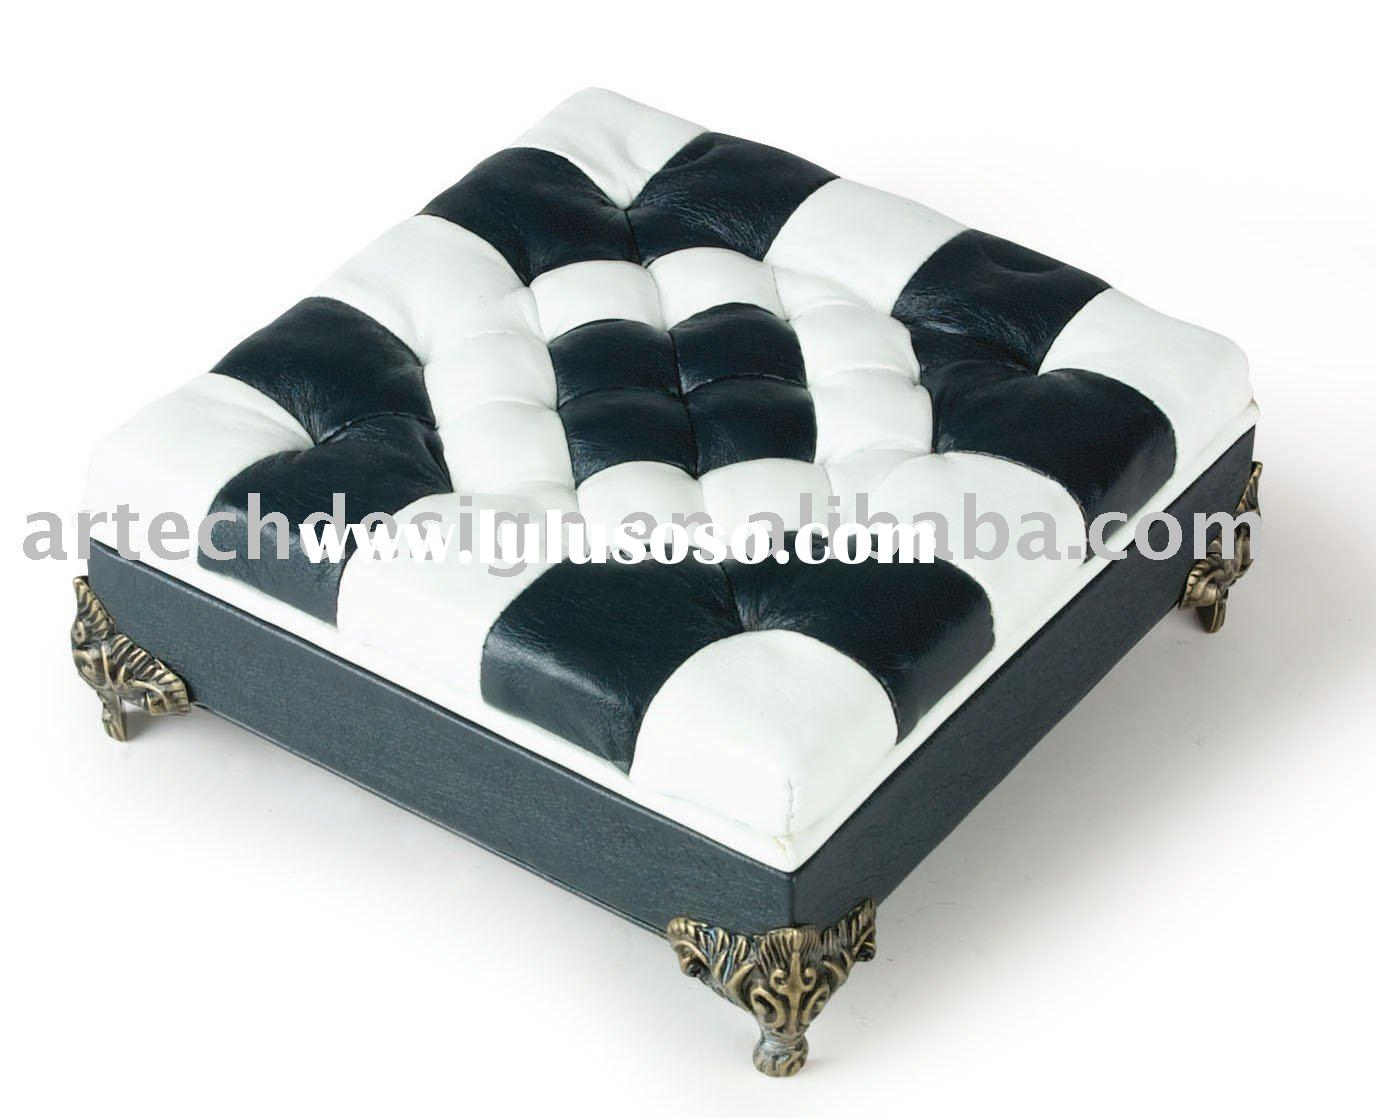 SAN C Victorian Velvet Sofa Jewelry Box for sale Price  : S80FancyGiftJewelryBox from sell.lulusoso.com size 1376 x 1118 jpeg 103kB